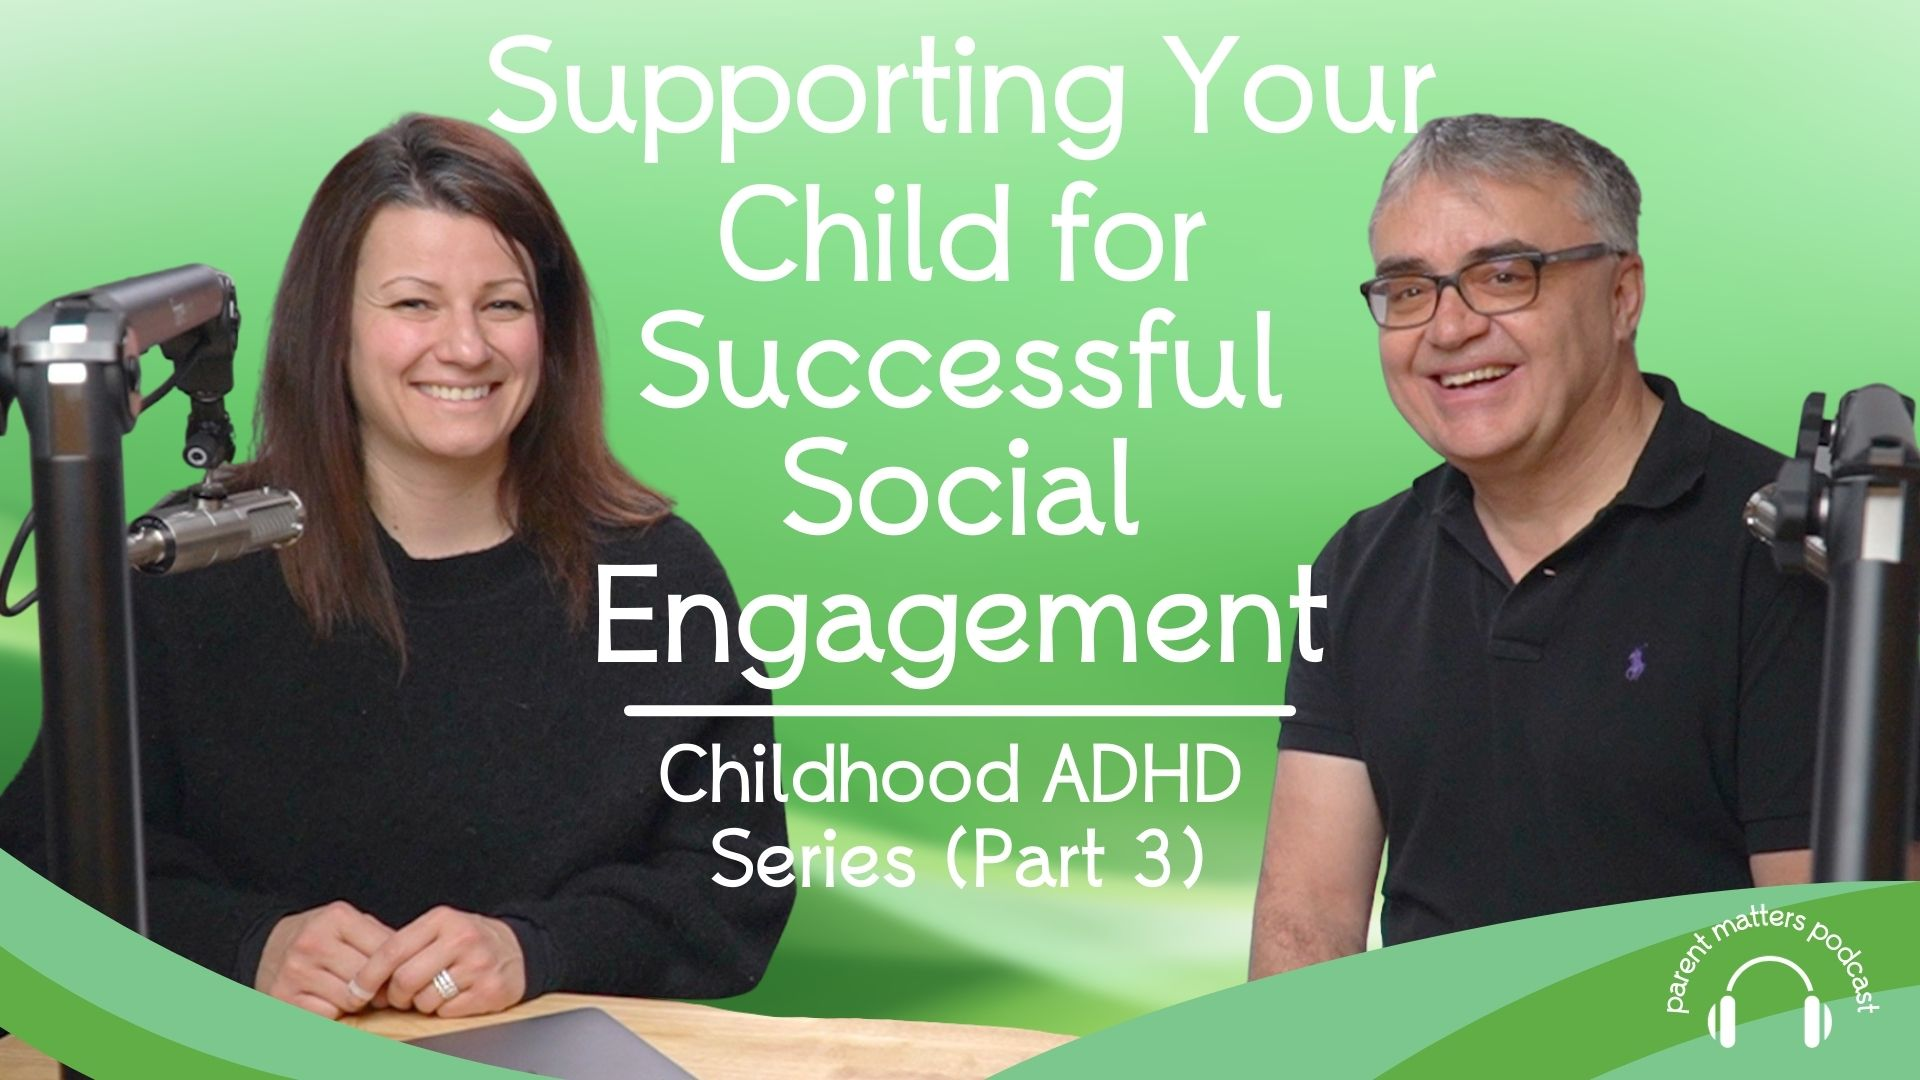 Supporting Your Child for Successful Social Engagement: Childhood ADHD Series - Part 3